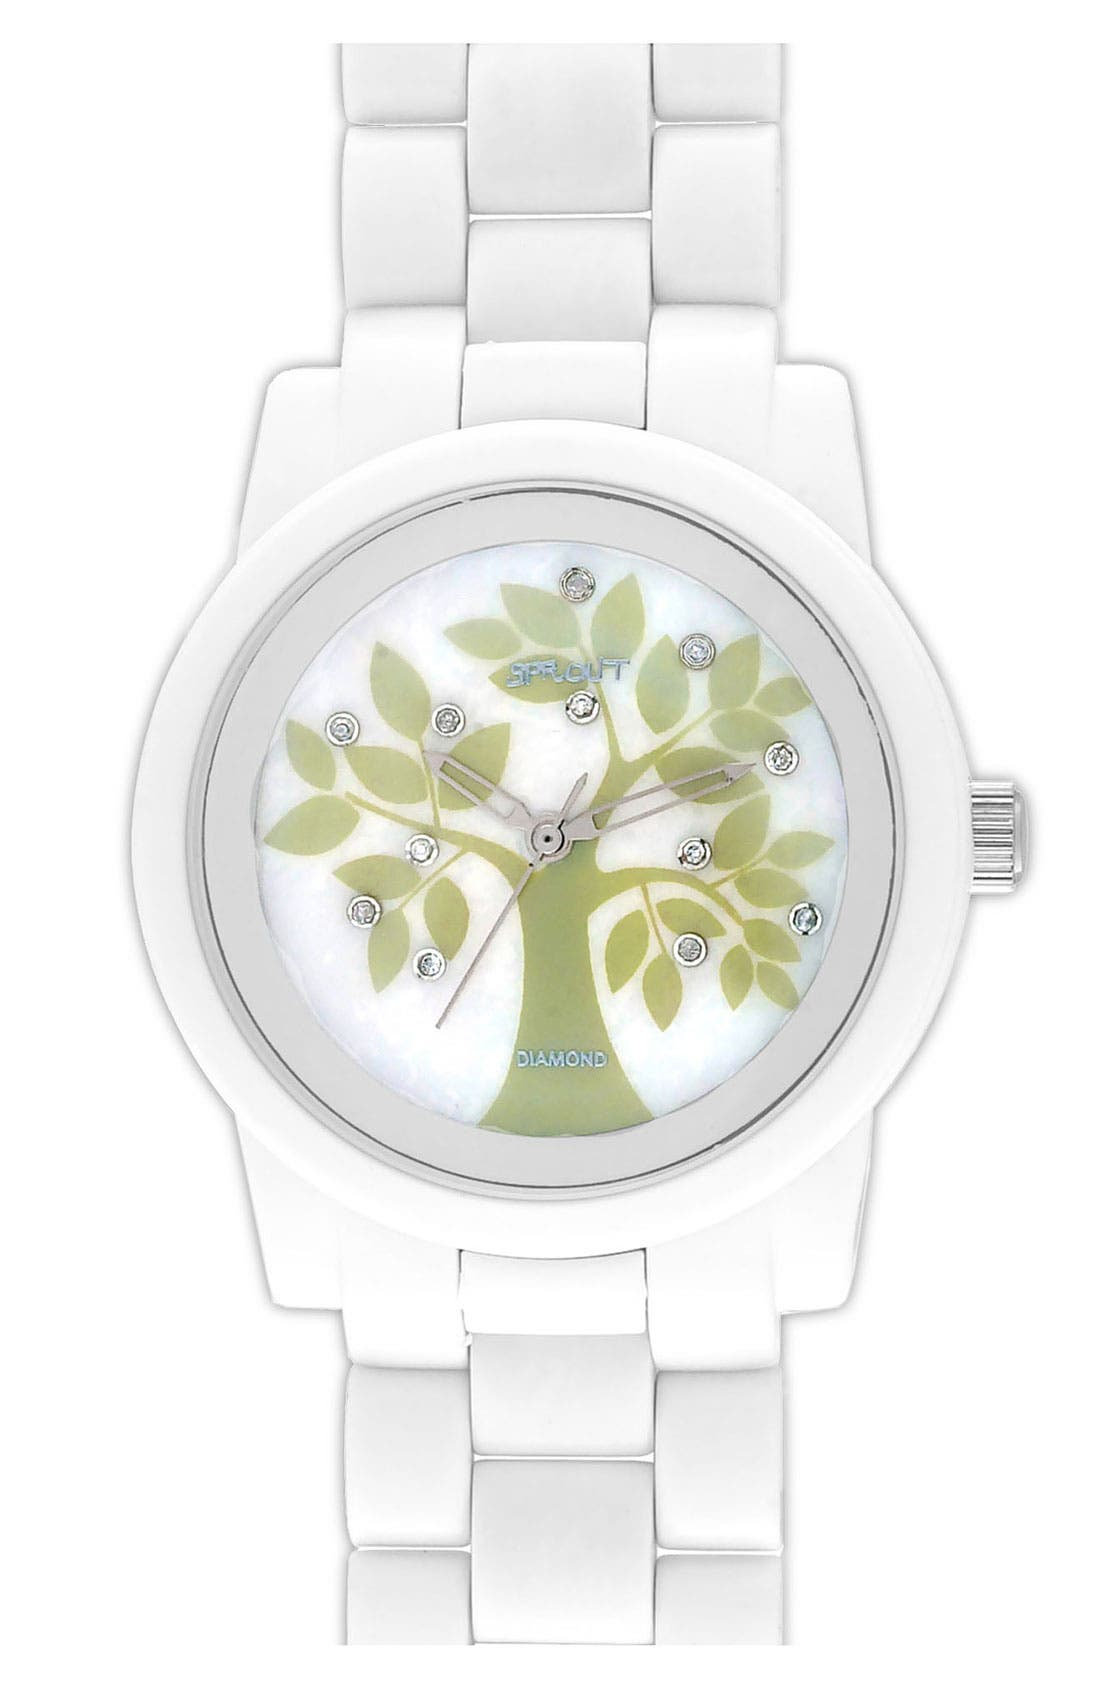 Alternate Image 1 Selected - SPROUT™ Watches Printed Diamond Dial Watch, 38mm